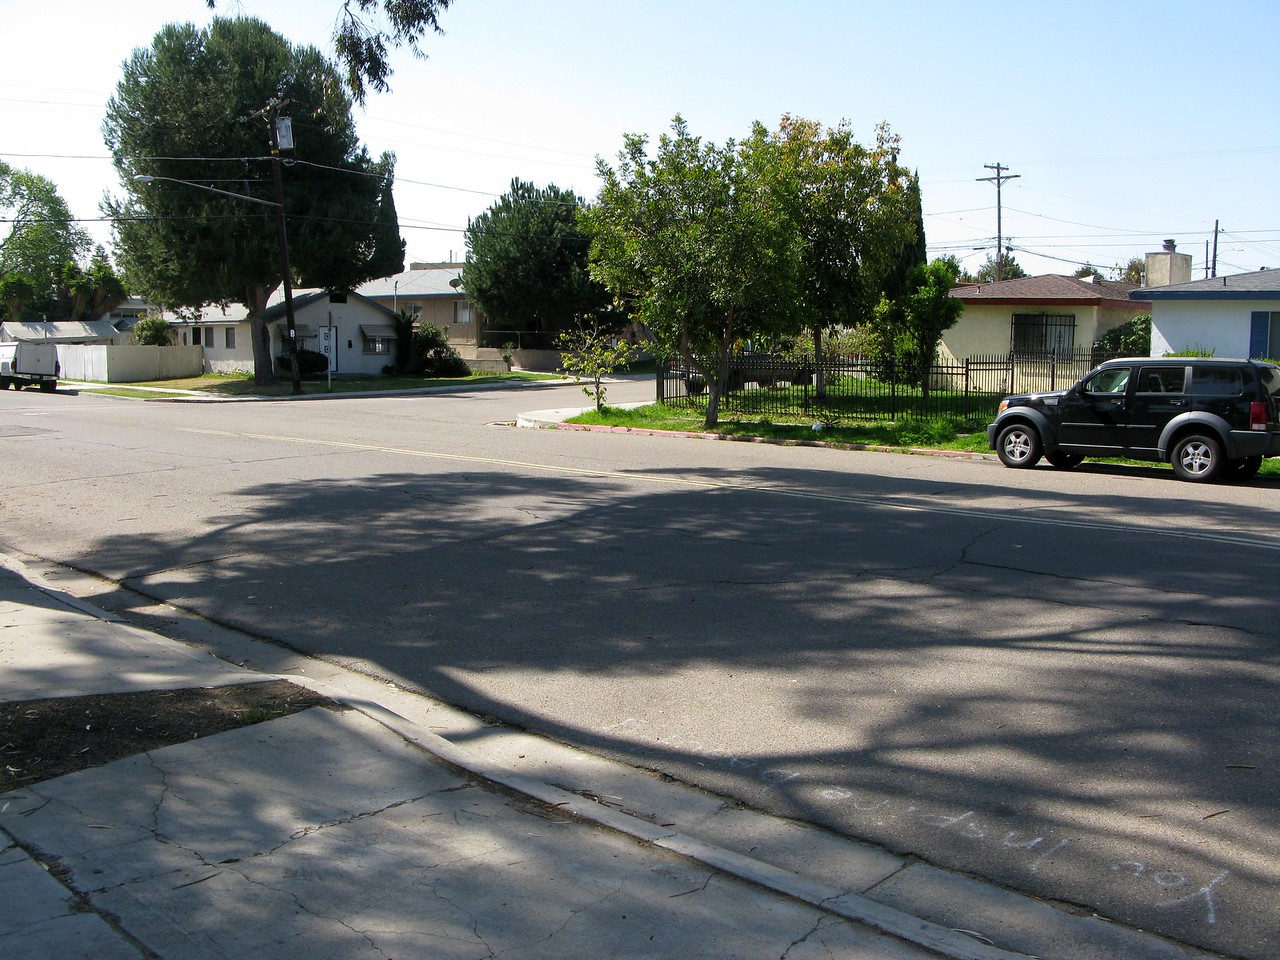 This photo taken from the initial point of impact illustrates the direction of debris travel across Nile and Dwight Streets.